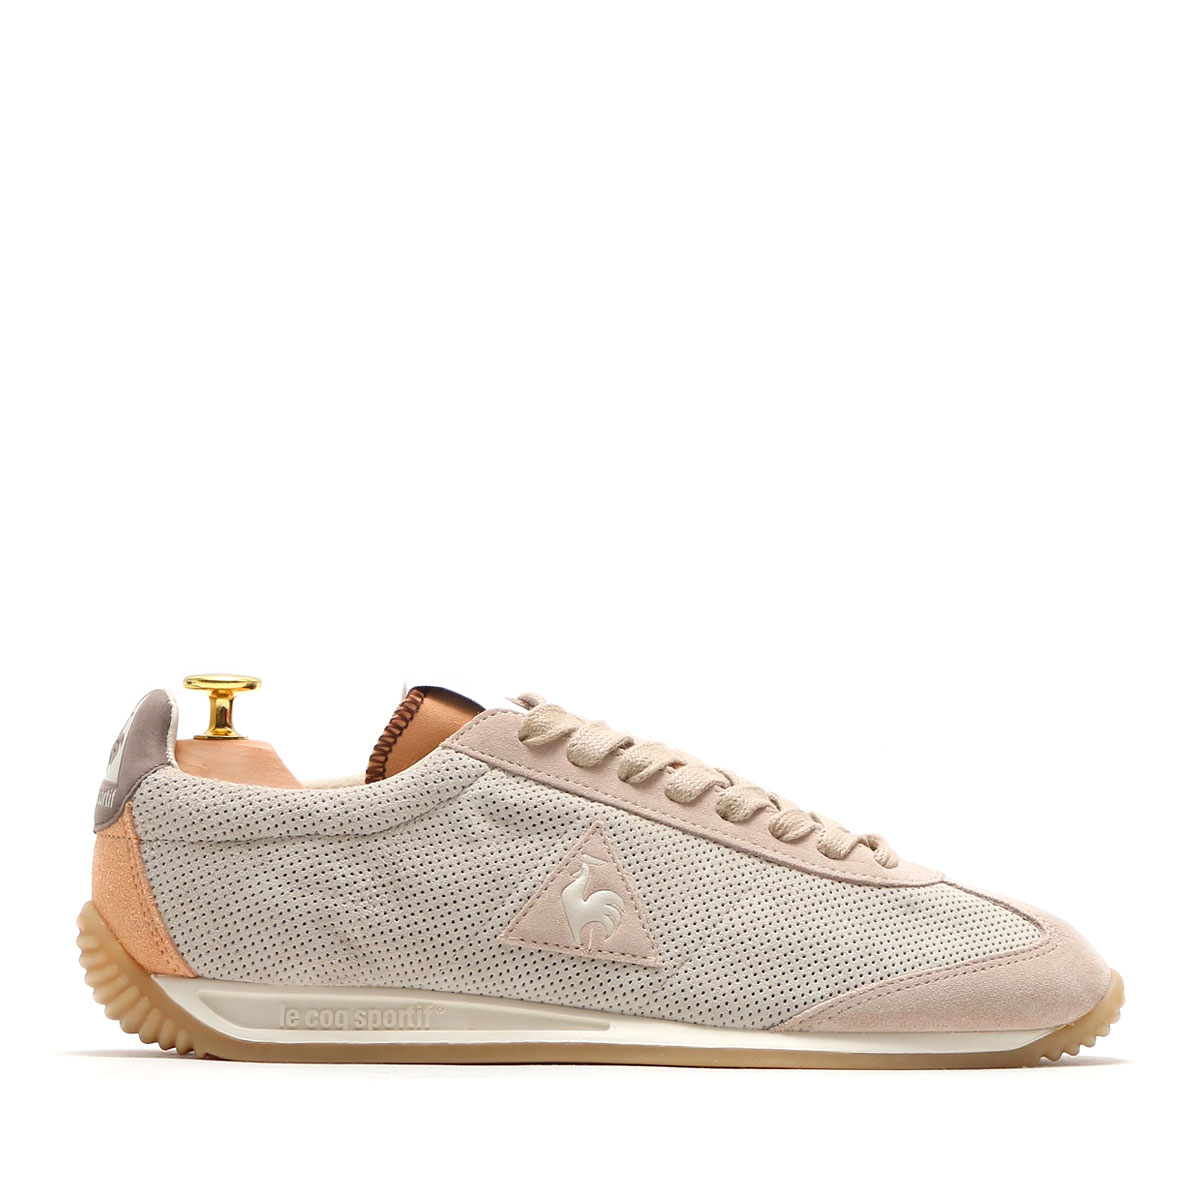 0223f676cef2 Le Coq Sportif paying attention this spring